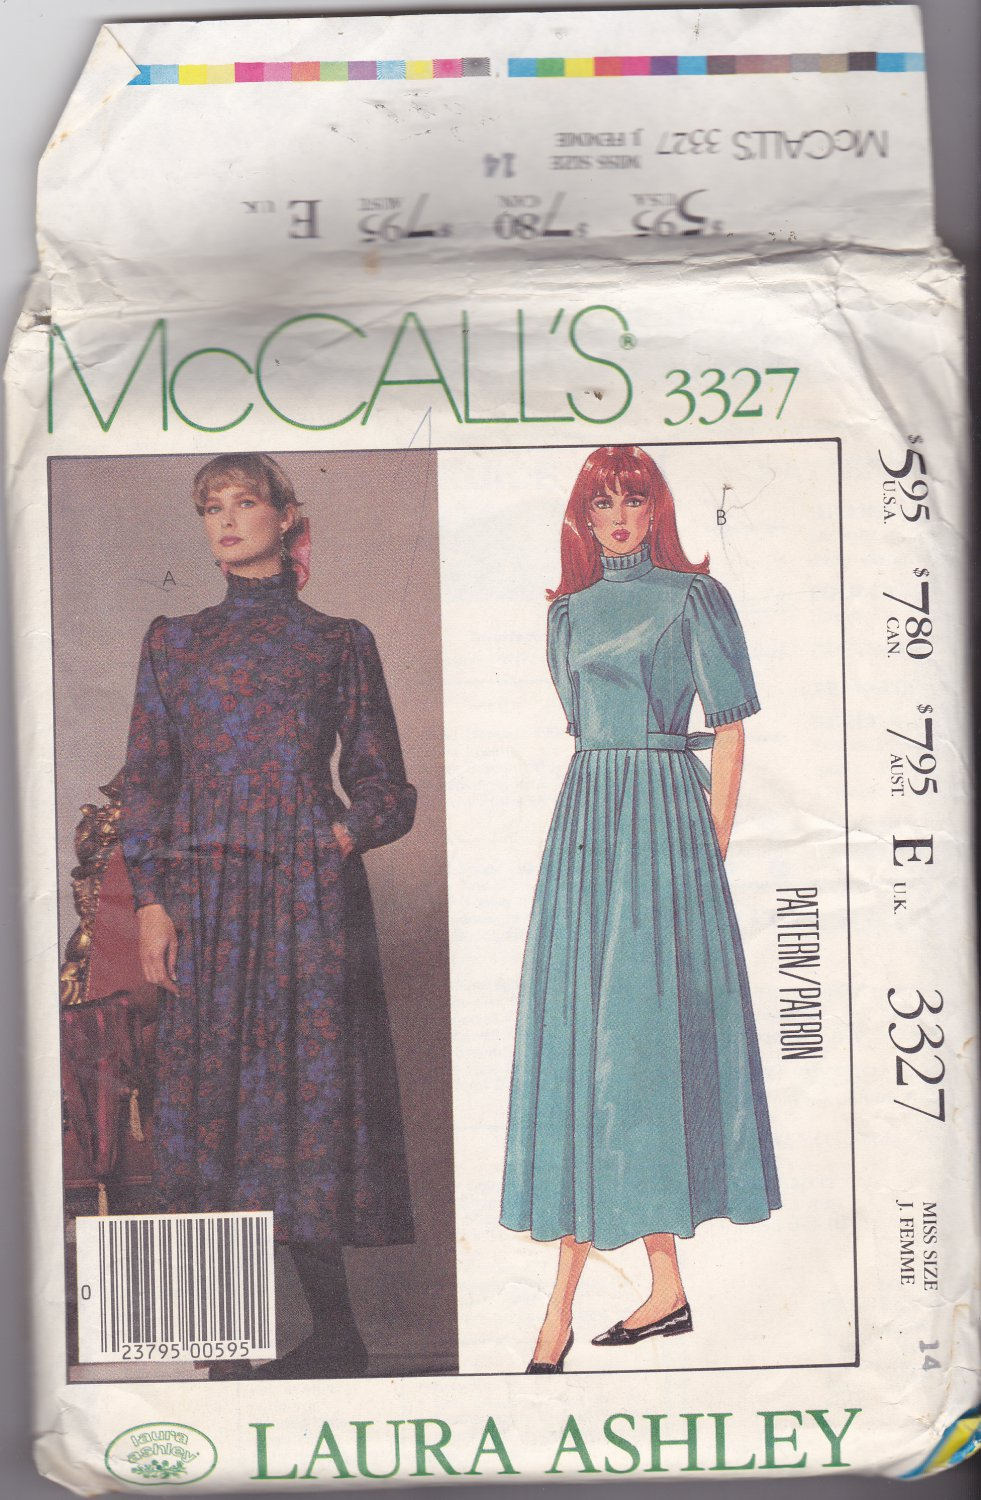 McCall's 3327 size 14 Laura Ashley, may be missing pieces